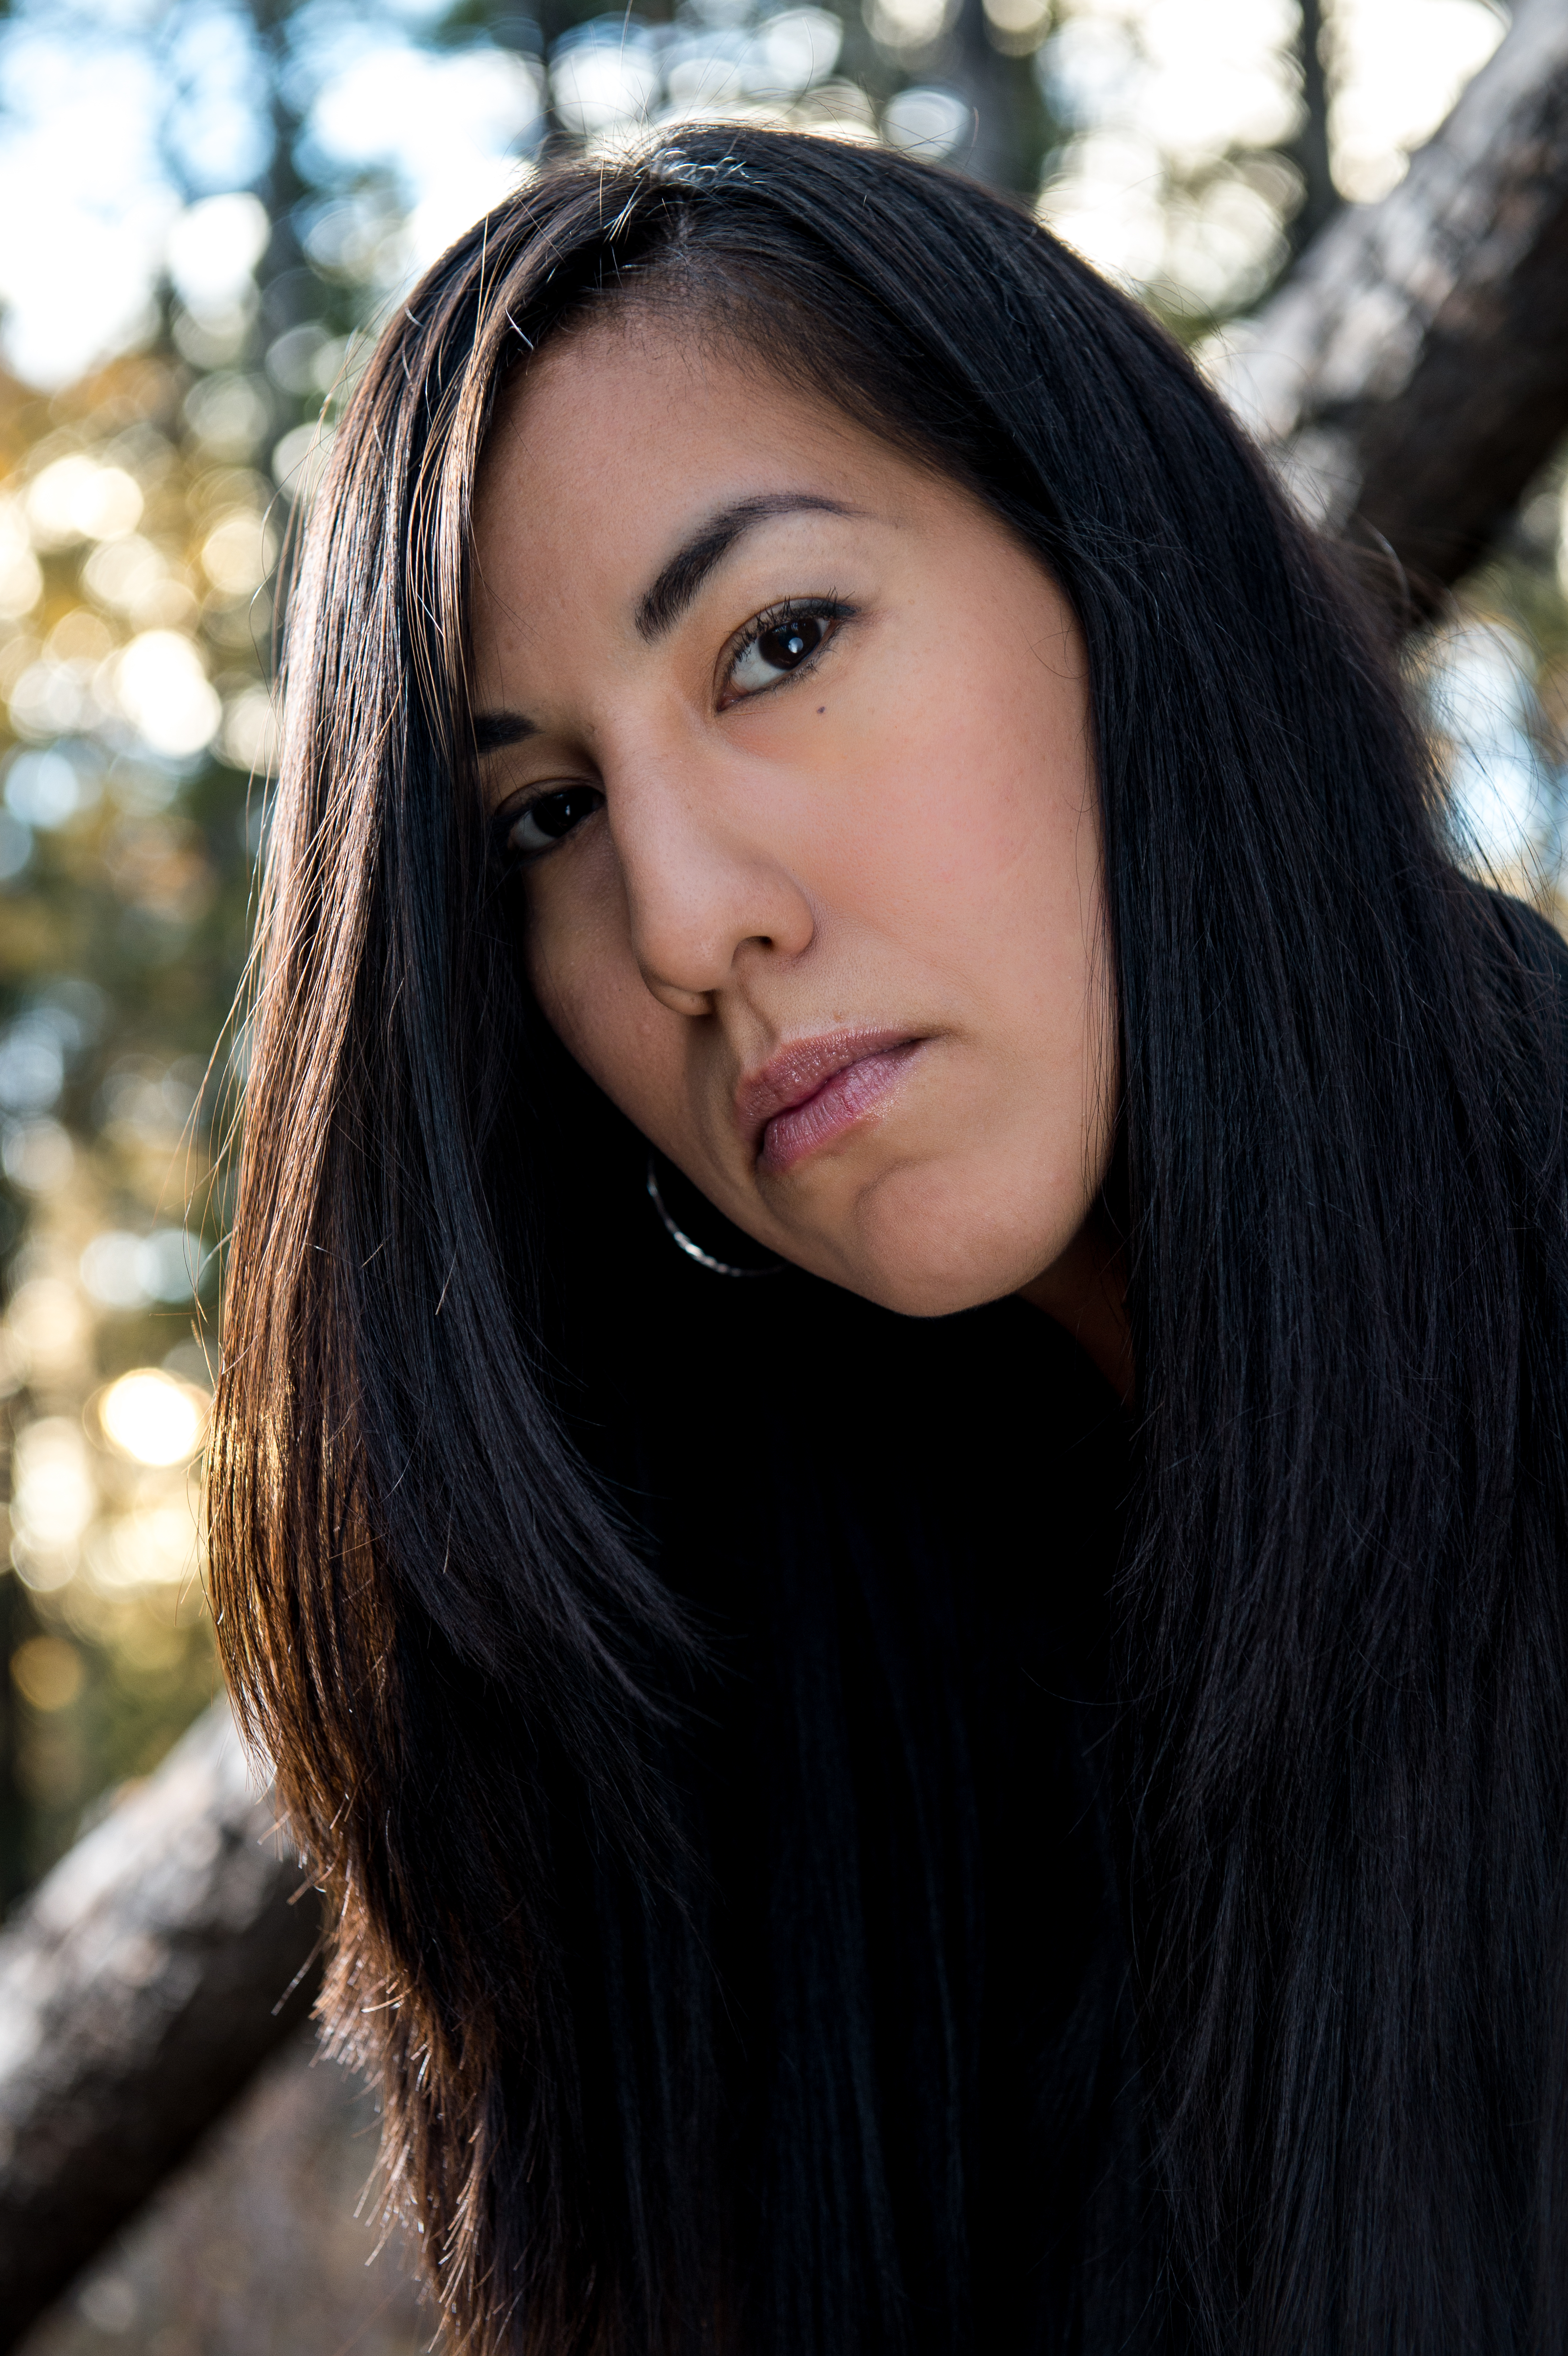 Take You With Me may be the debut album from singer/songwriter Jasmine  Netsena, but the resident of Fort Nelson, BC, is far from a musical novice.